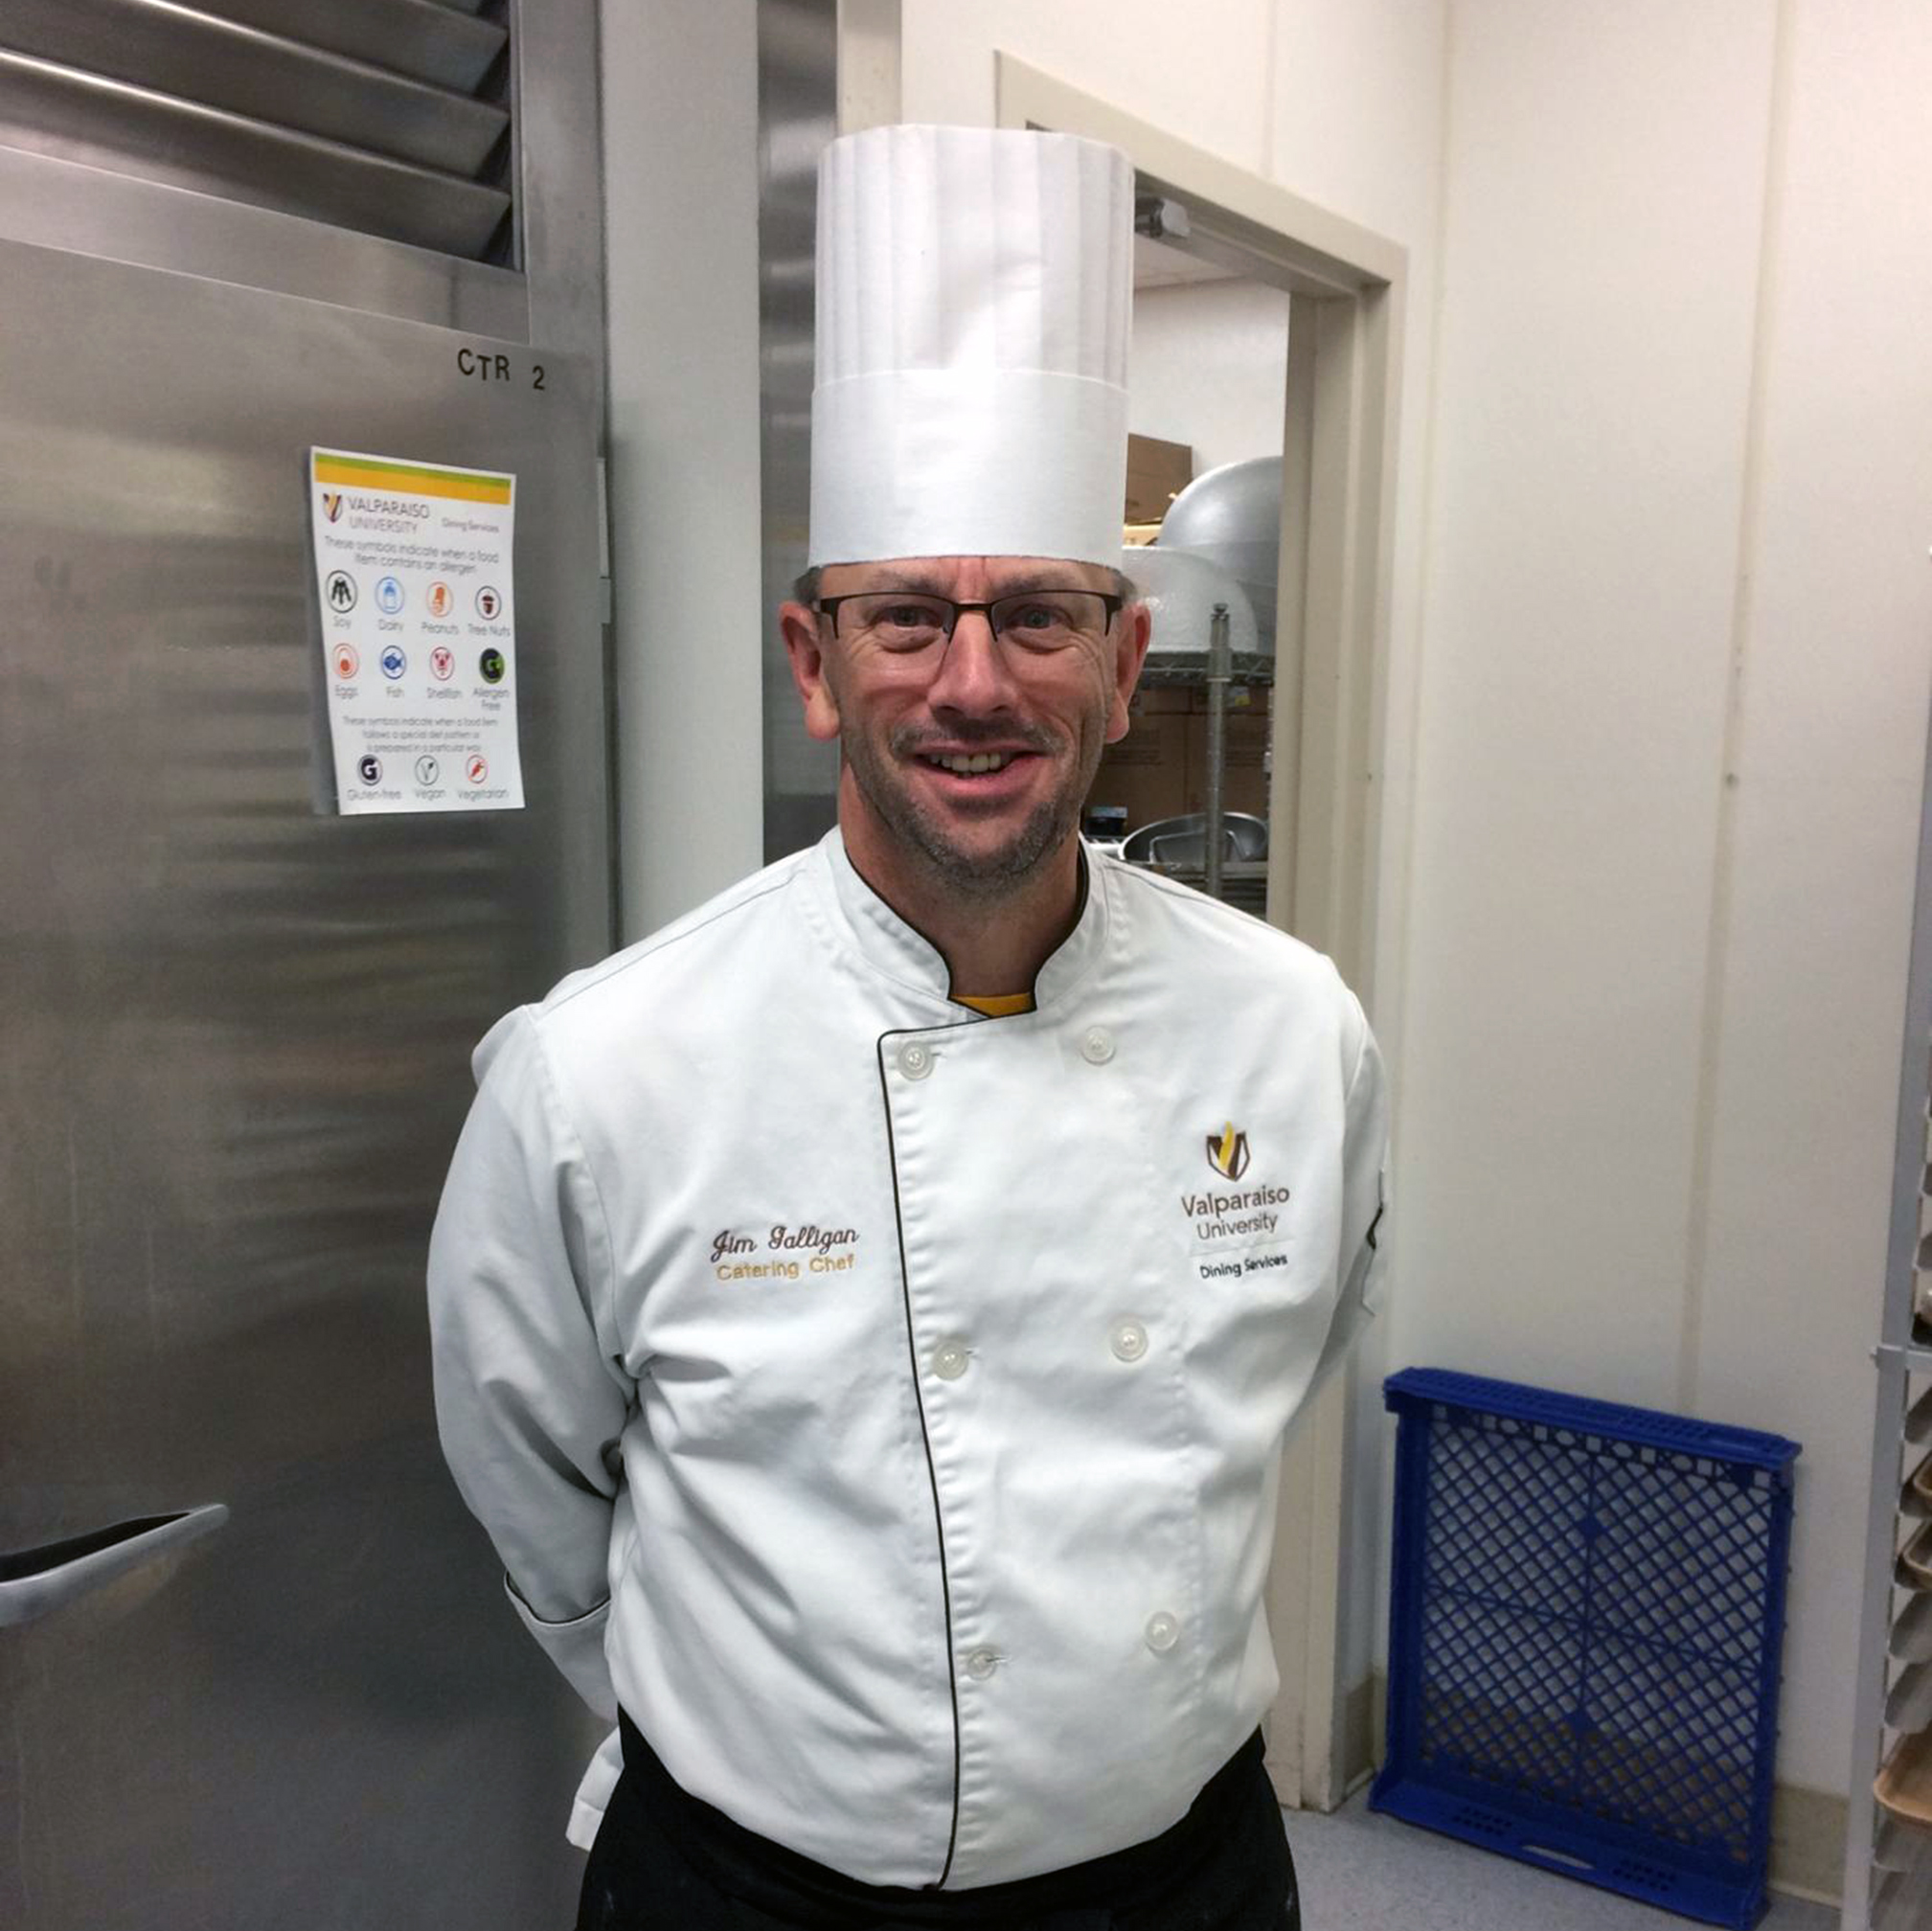 Chef Jim in his white jacket and chef hat